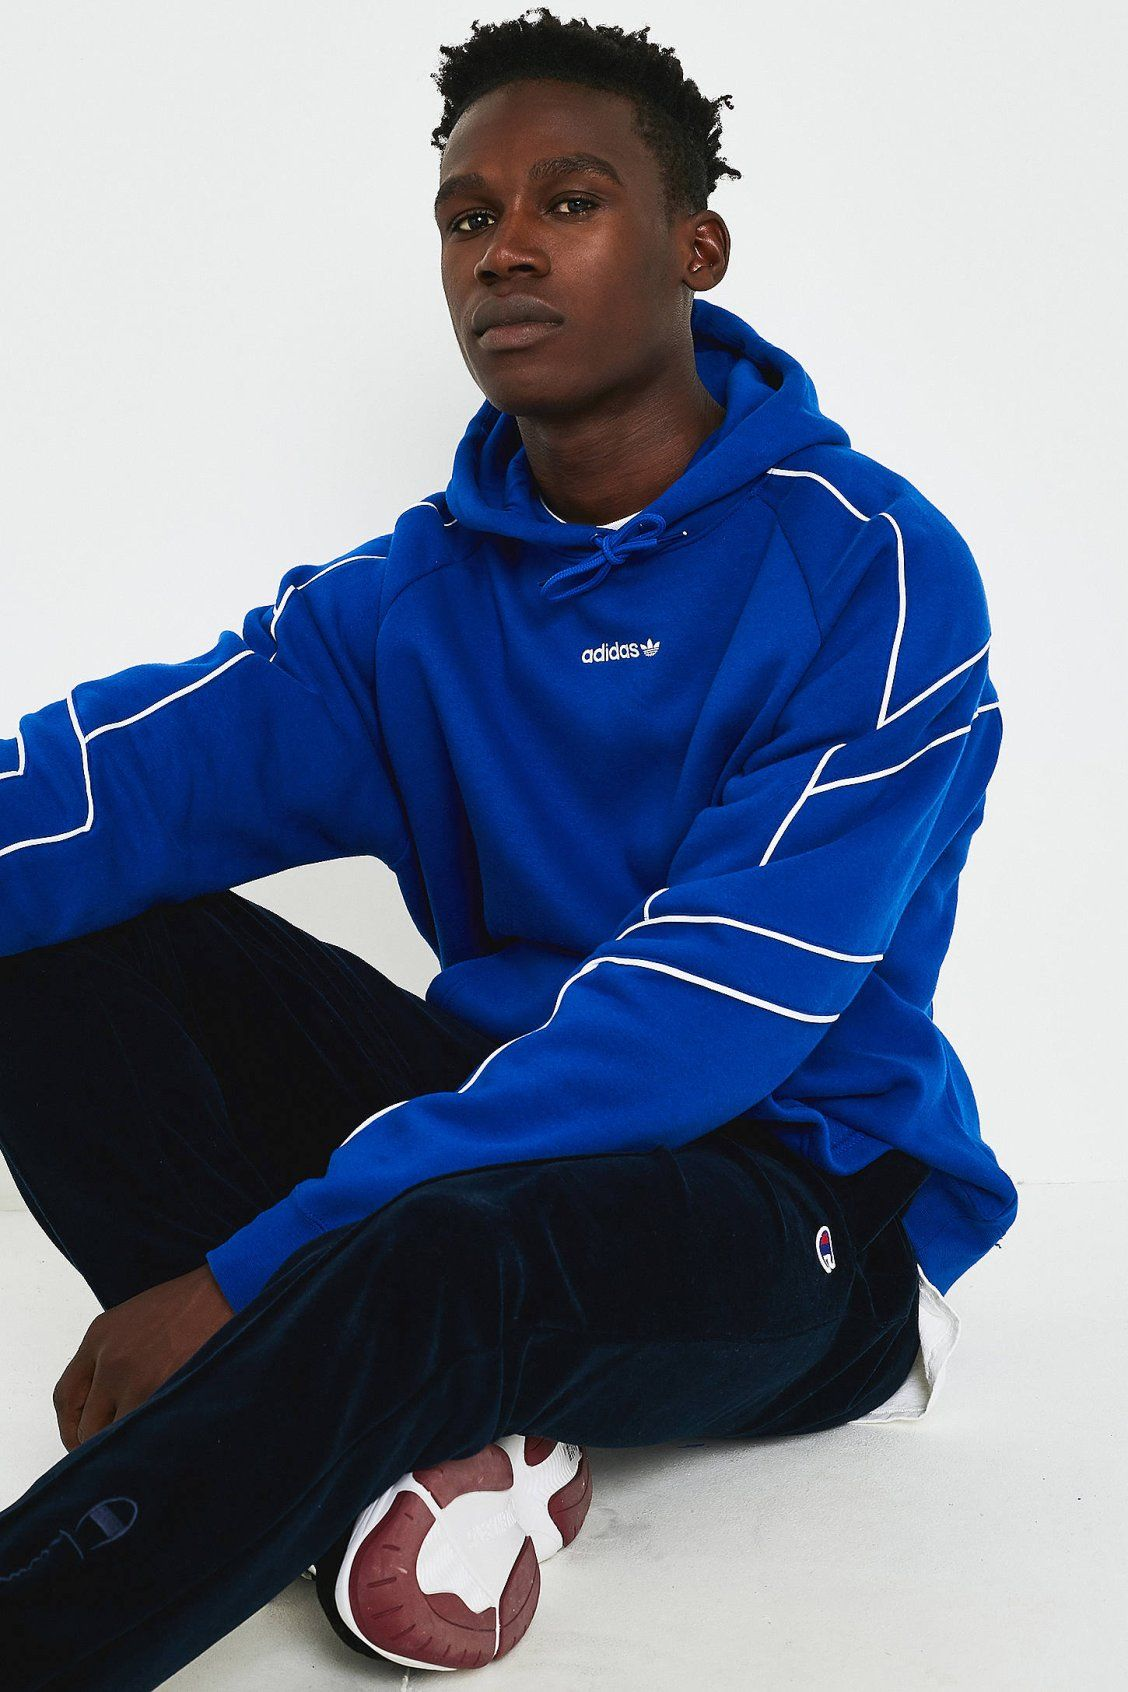 adidas EQT Blue Outline Hoodie | Urban outfitters men